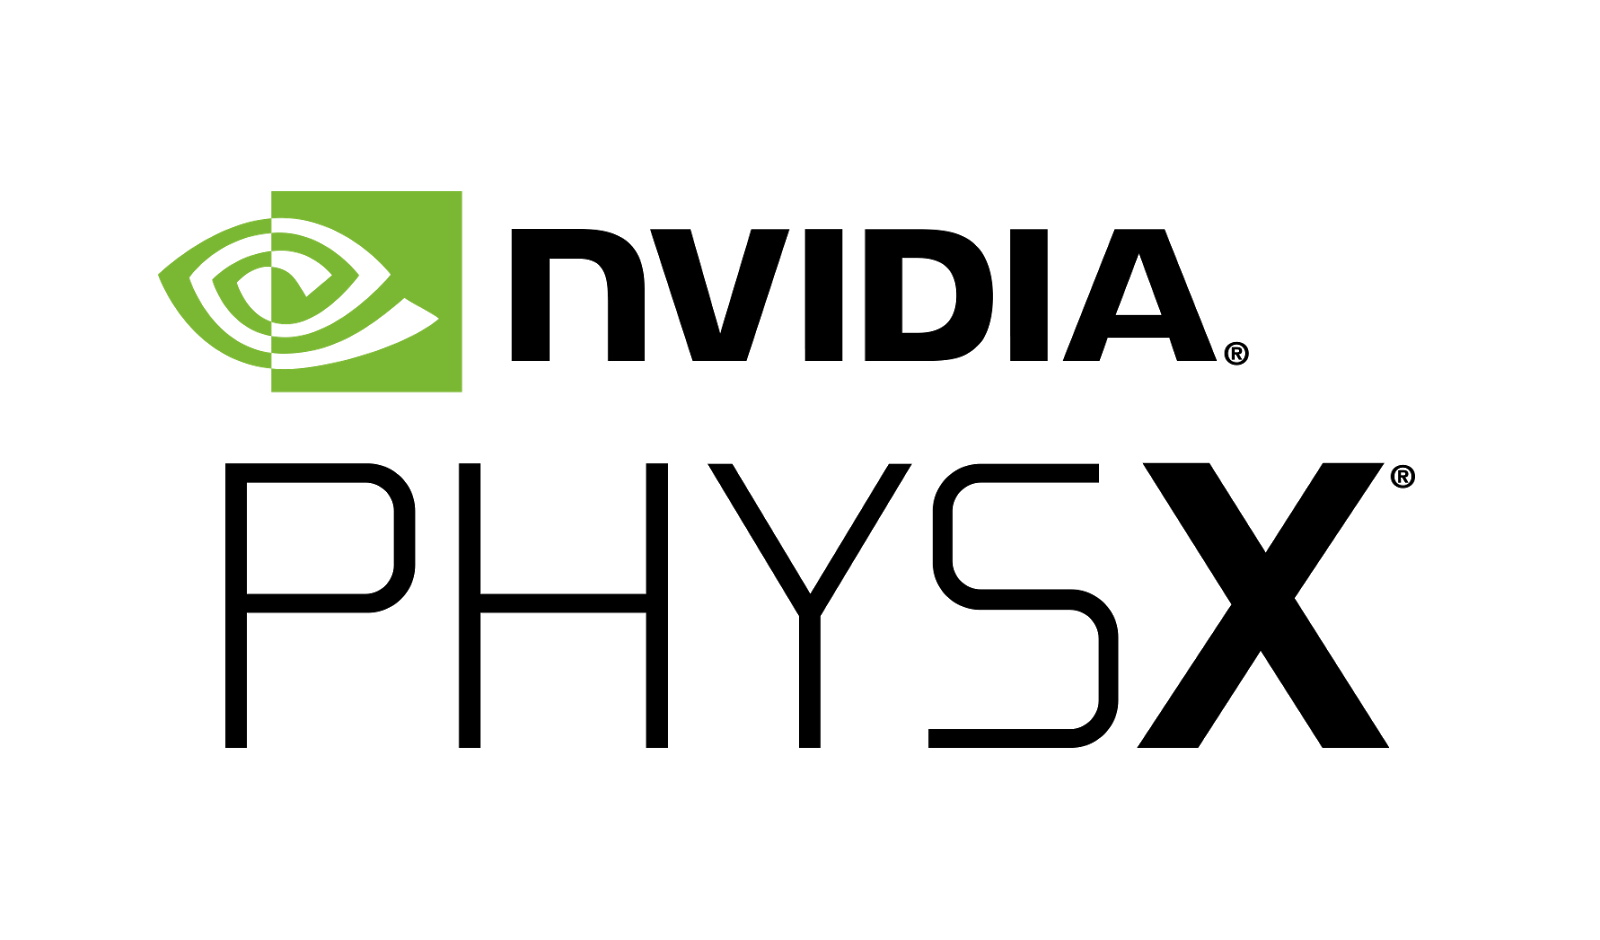 nvidia physx system software windows 7 64 bit download